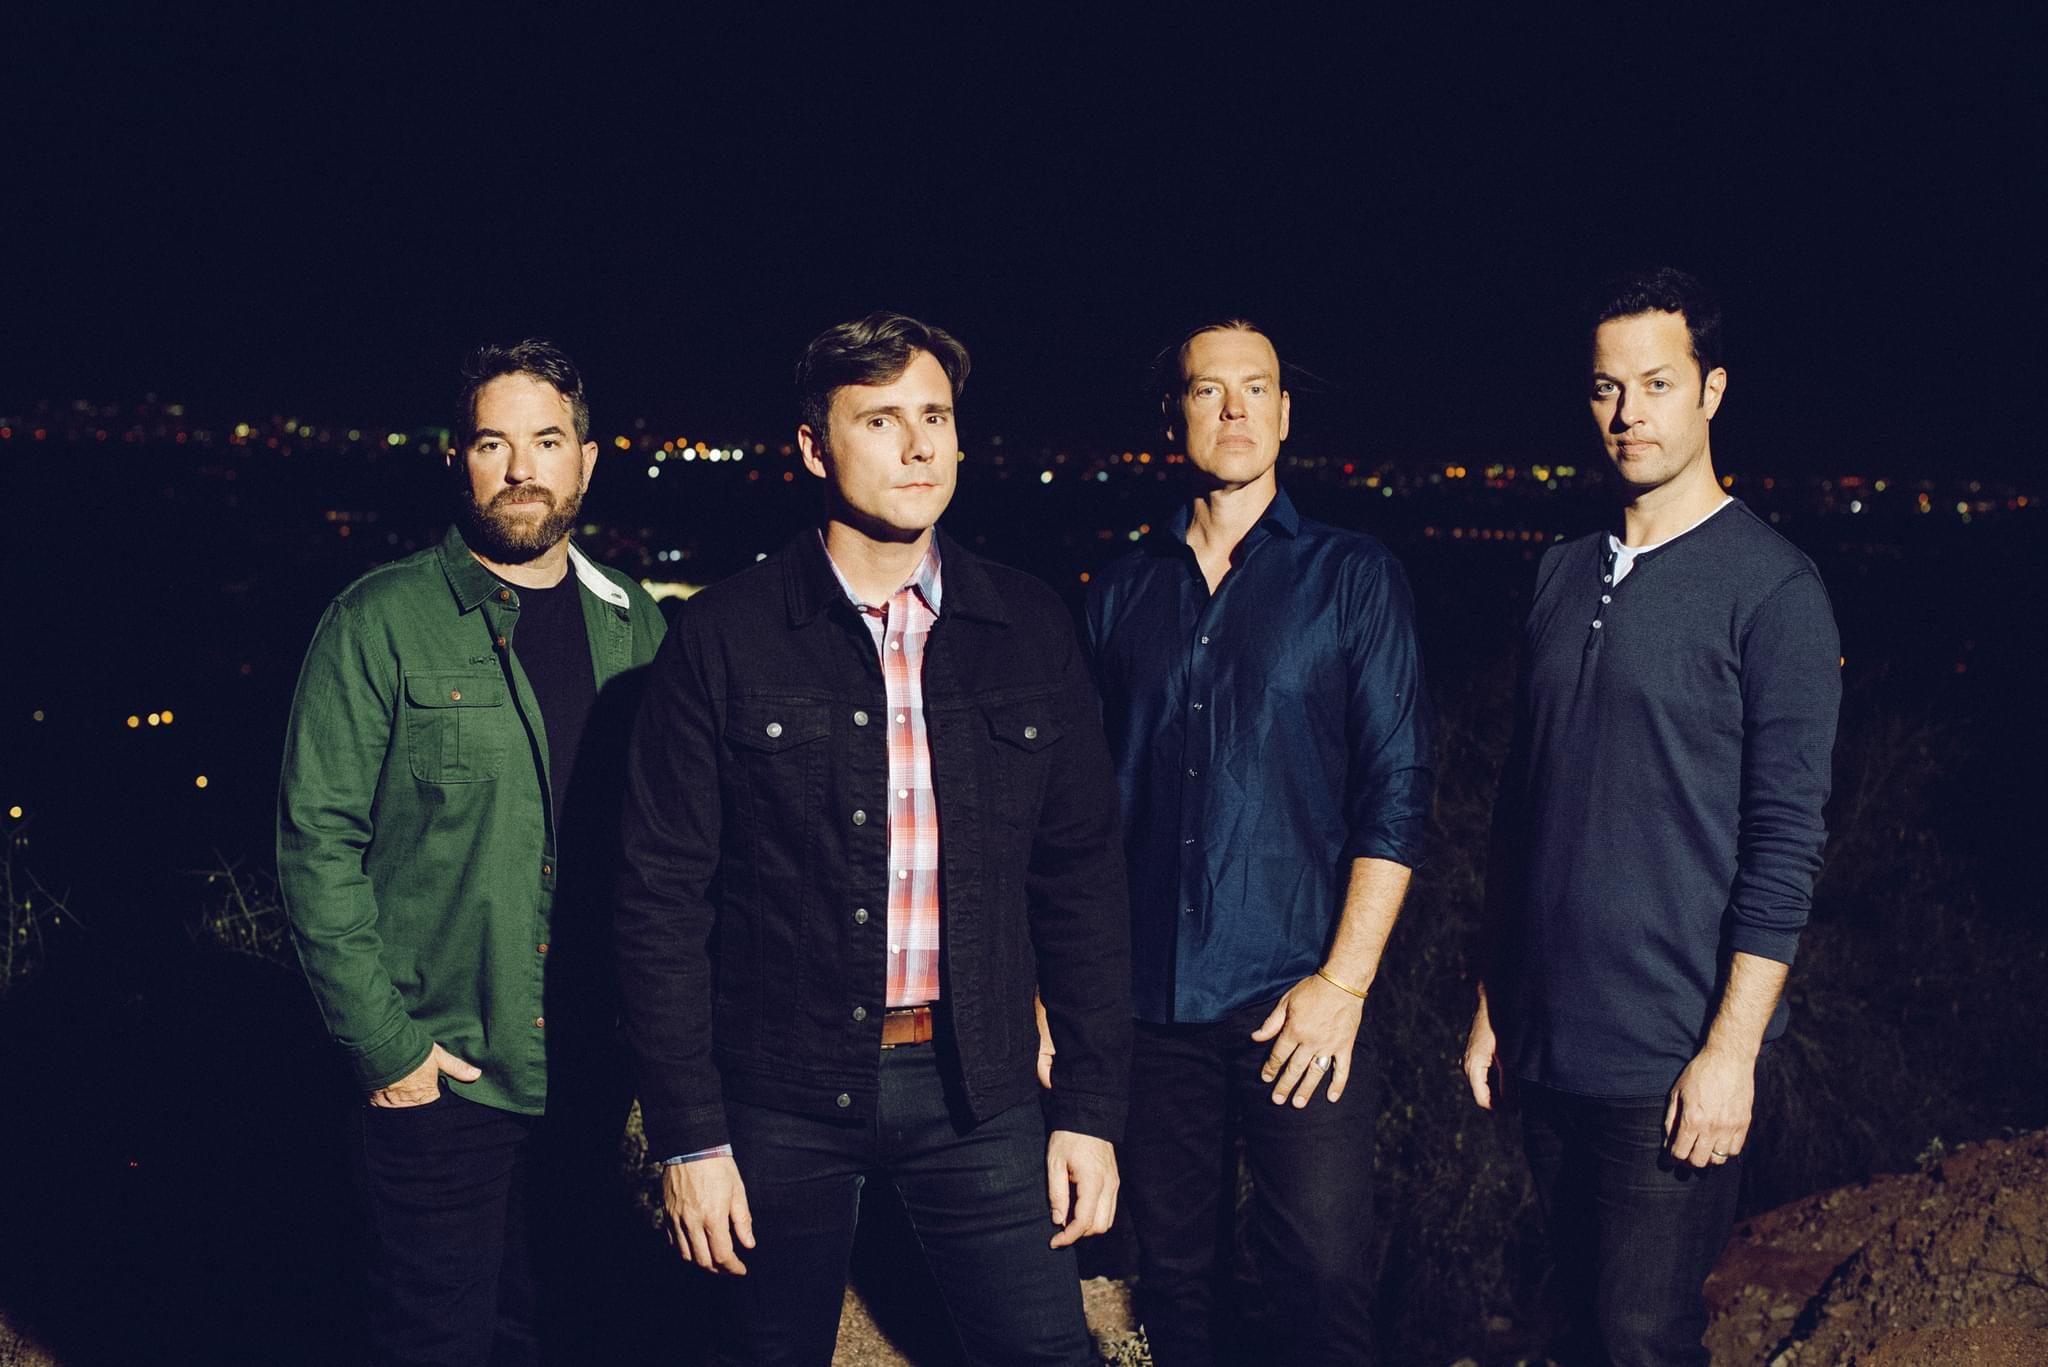 Jimmy Eat World to Appear on 2000 Screens